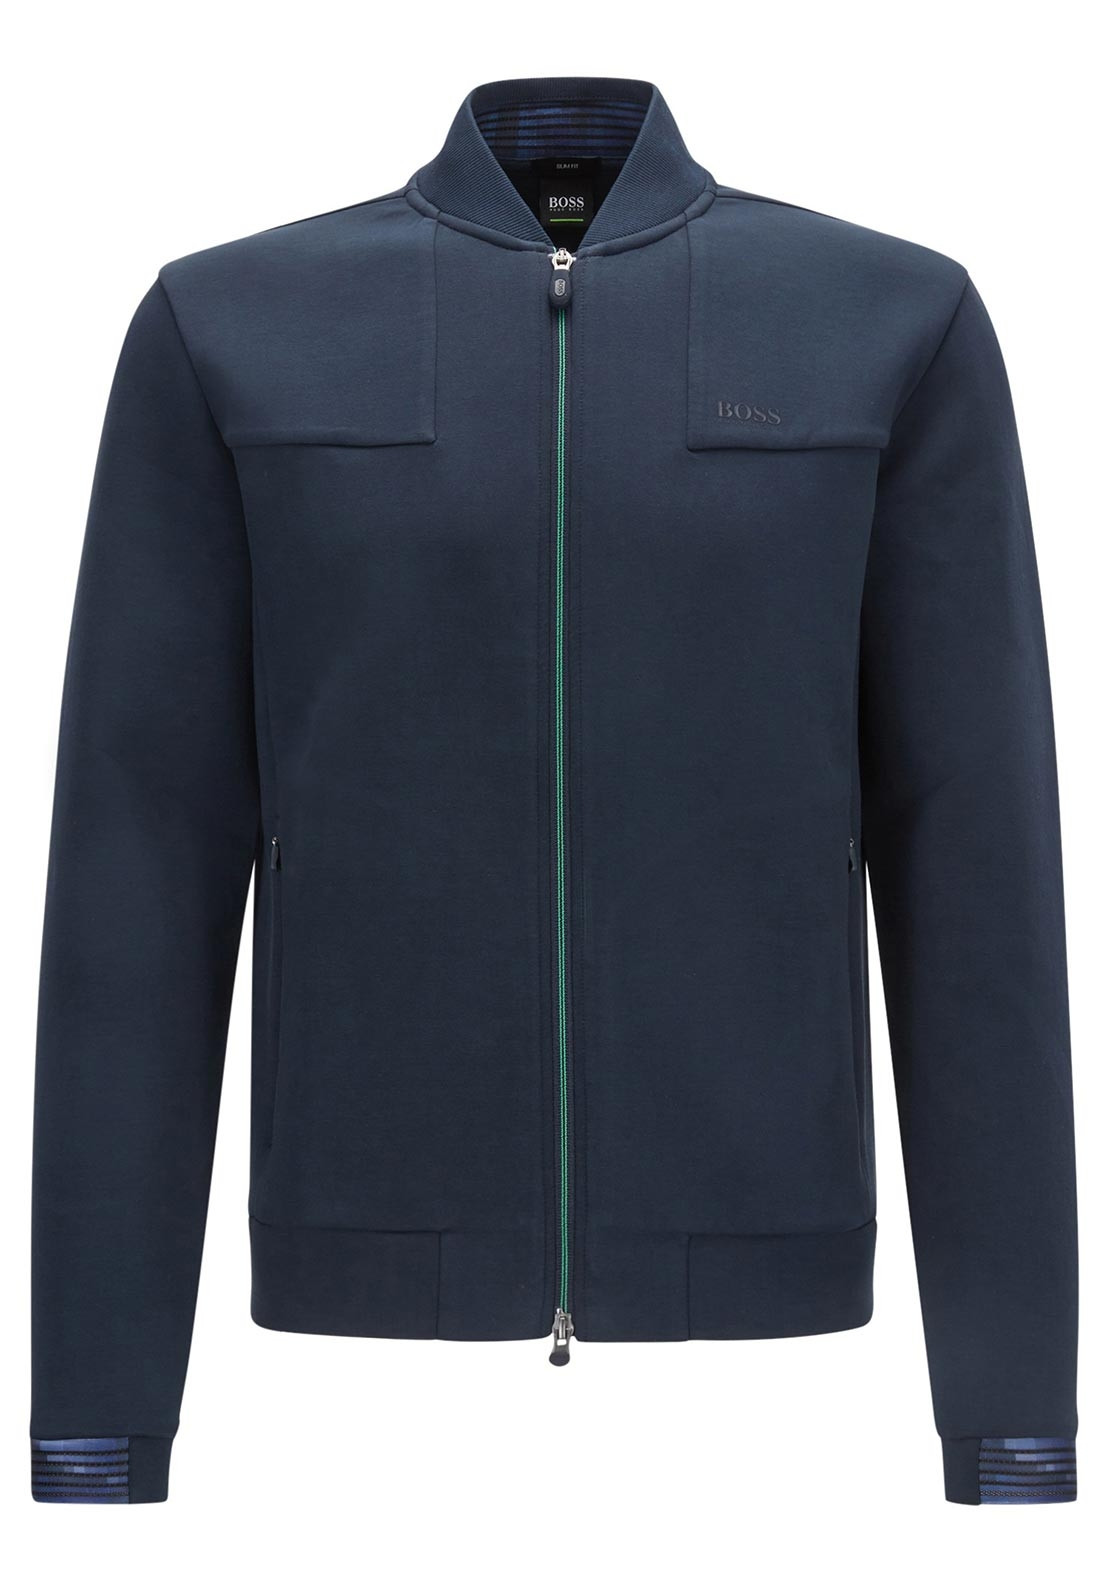 6dbcfe3408 Hugo Boss Sicon Slim Fit Zip Up Jacket, Navy | McElhinneys